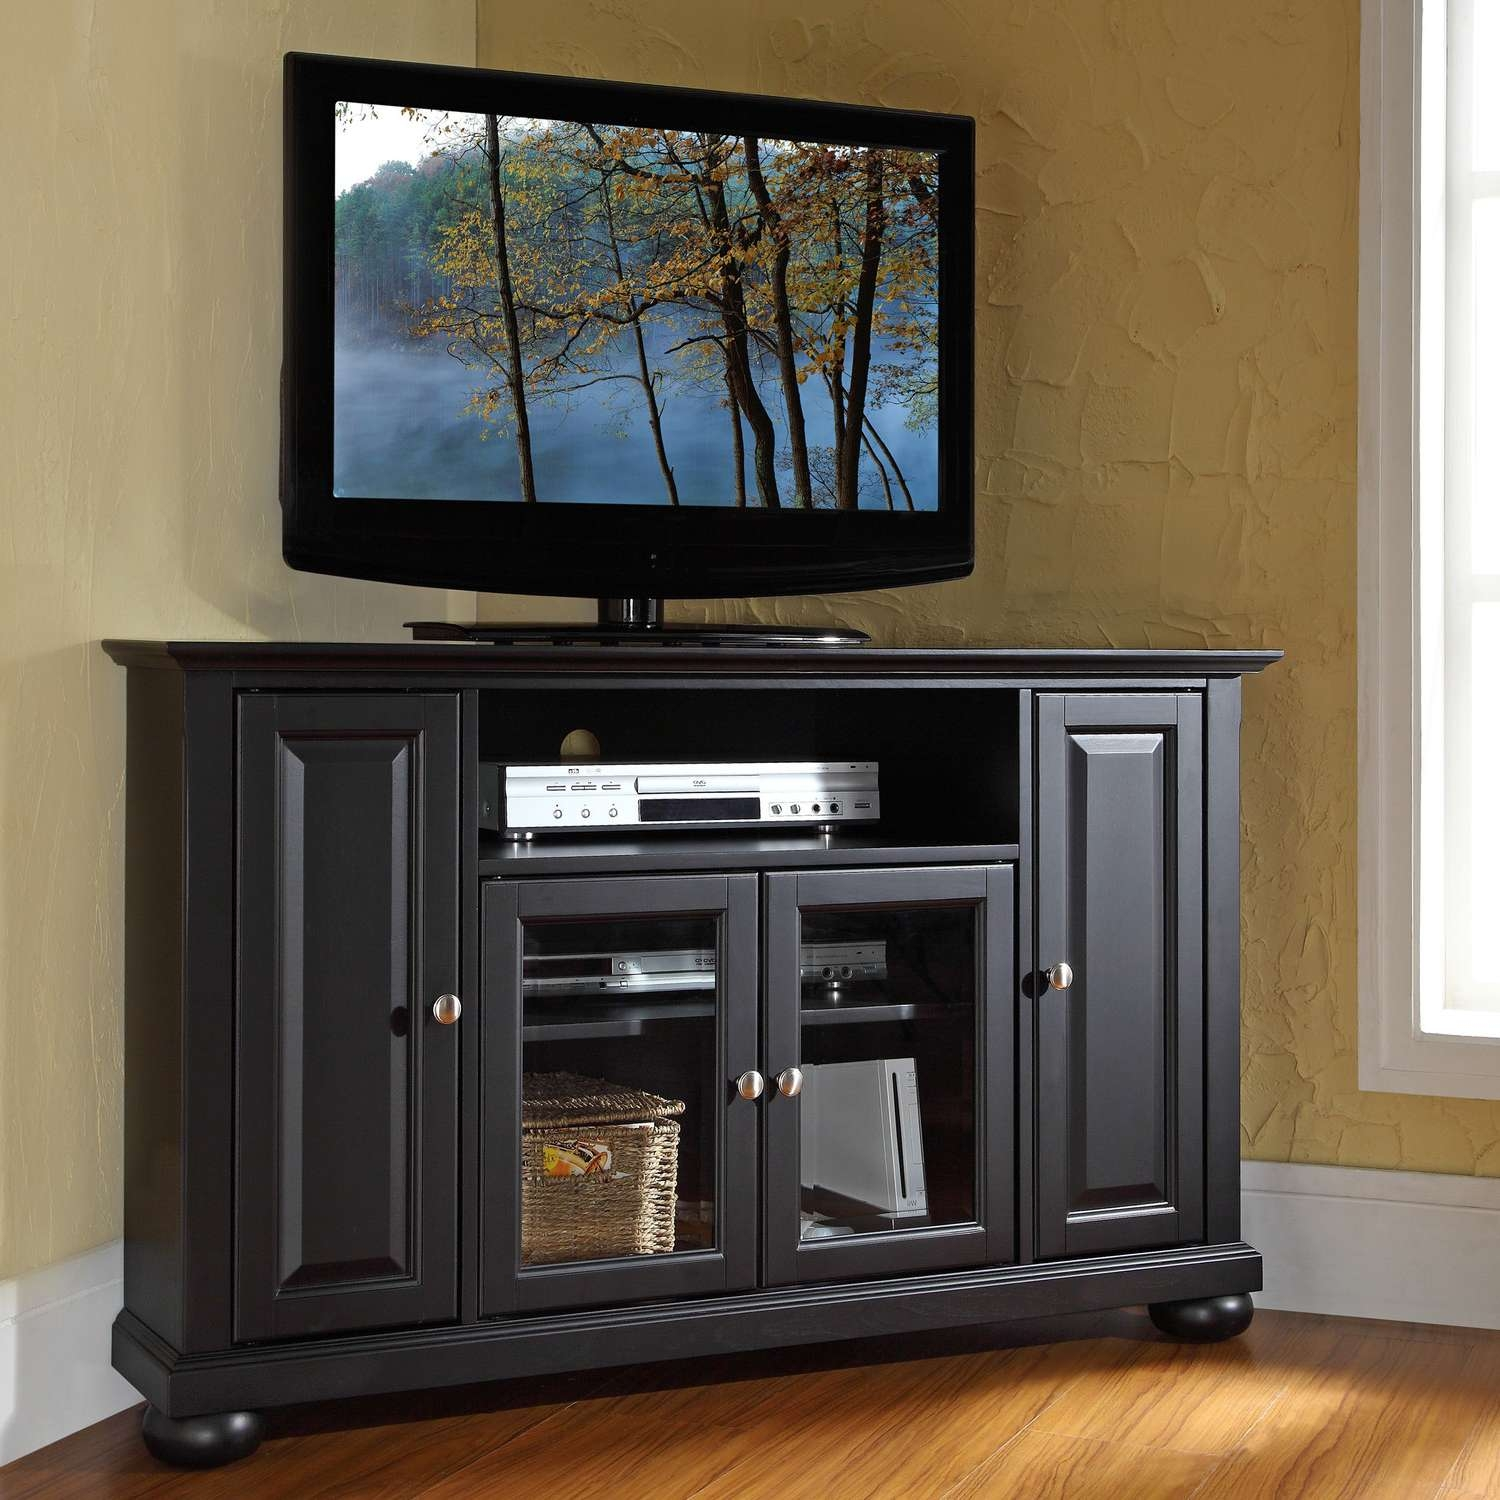 Tall Media Console: Good Or Bad? Check This Out! – Home Decorreisa In Tall Black Tv Cabinets (View 17 of 20)